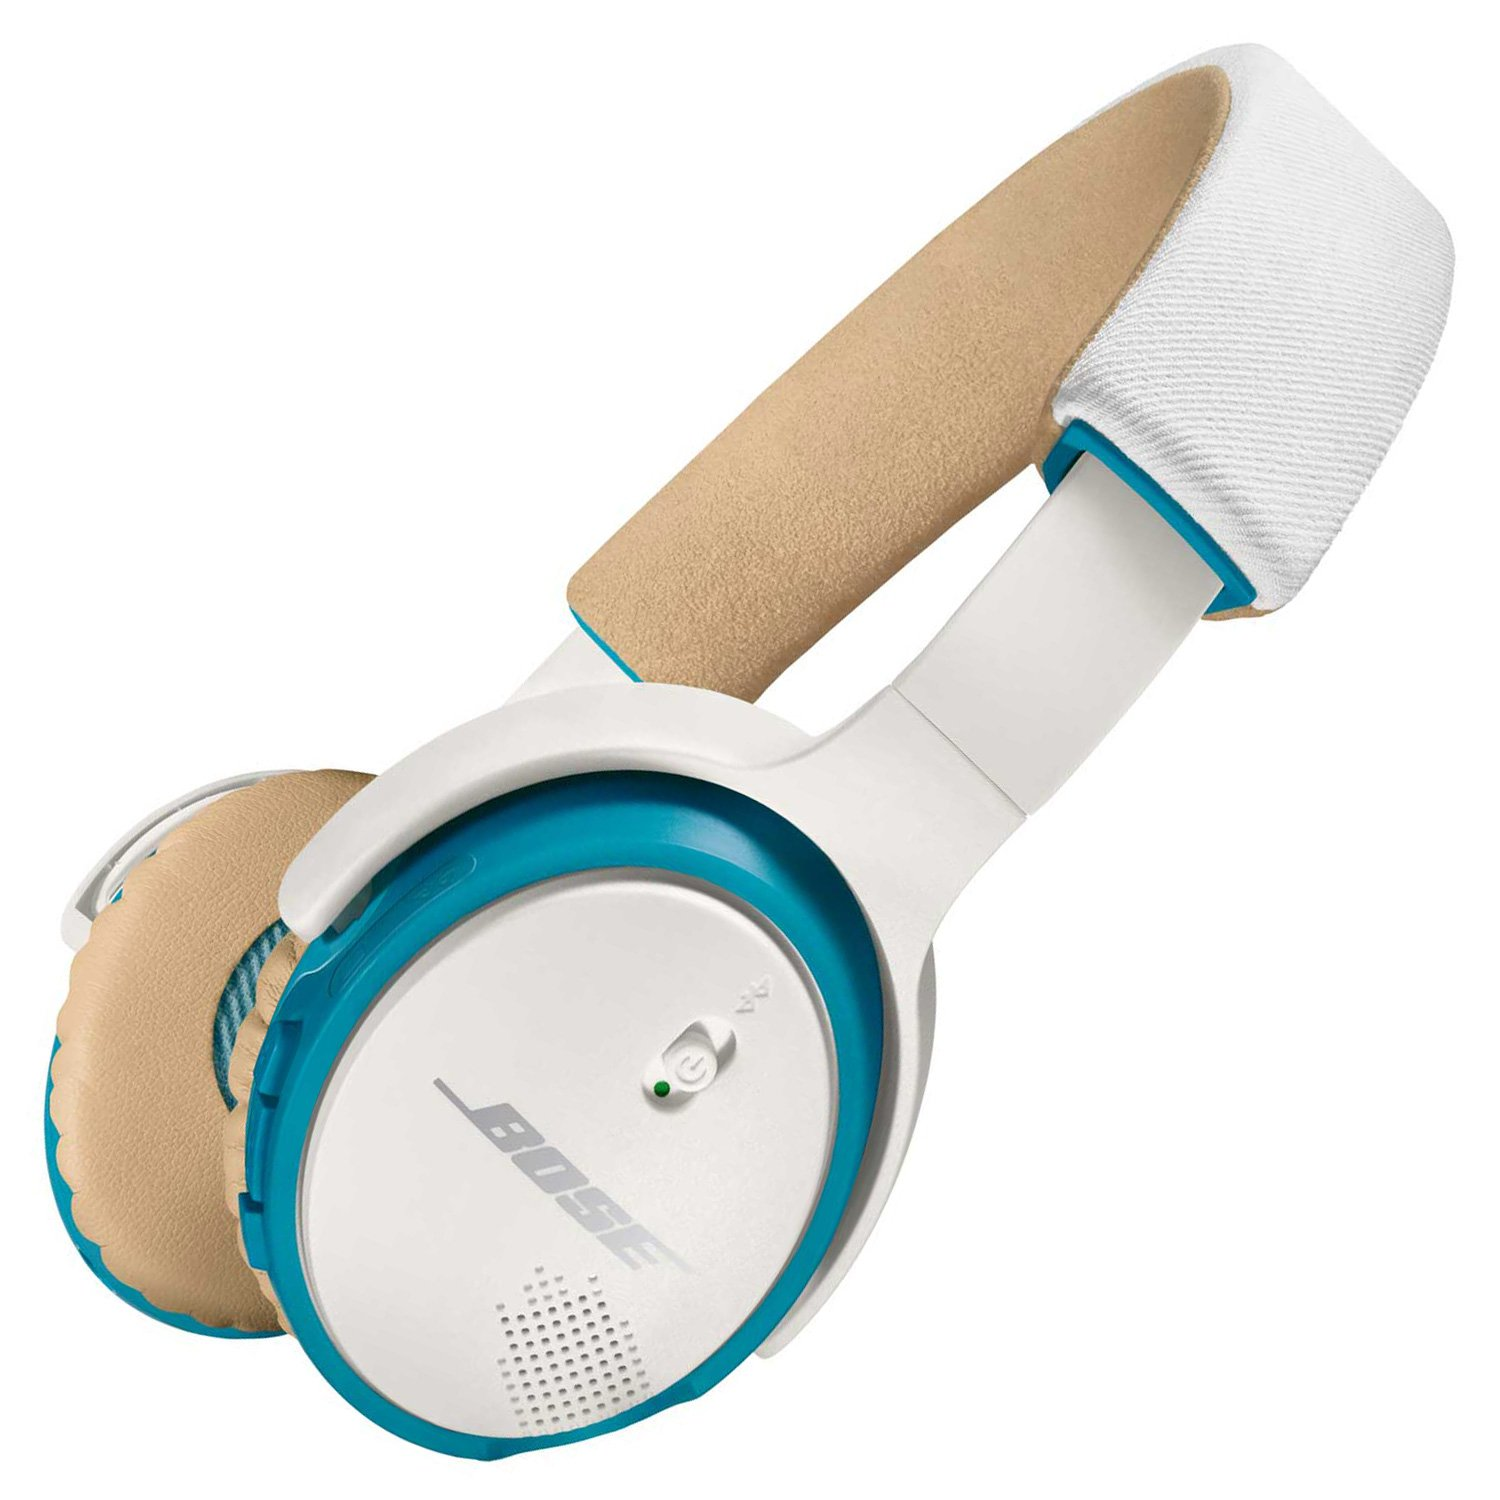 Bose SoundLink Ear Bluetooth Headphones White Amazon Electronics